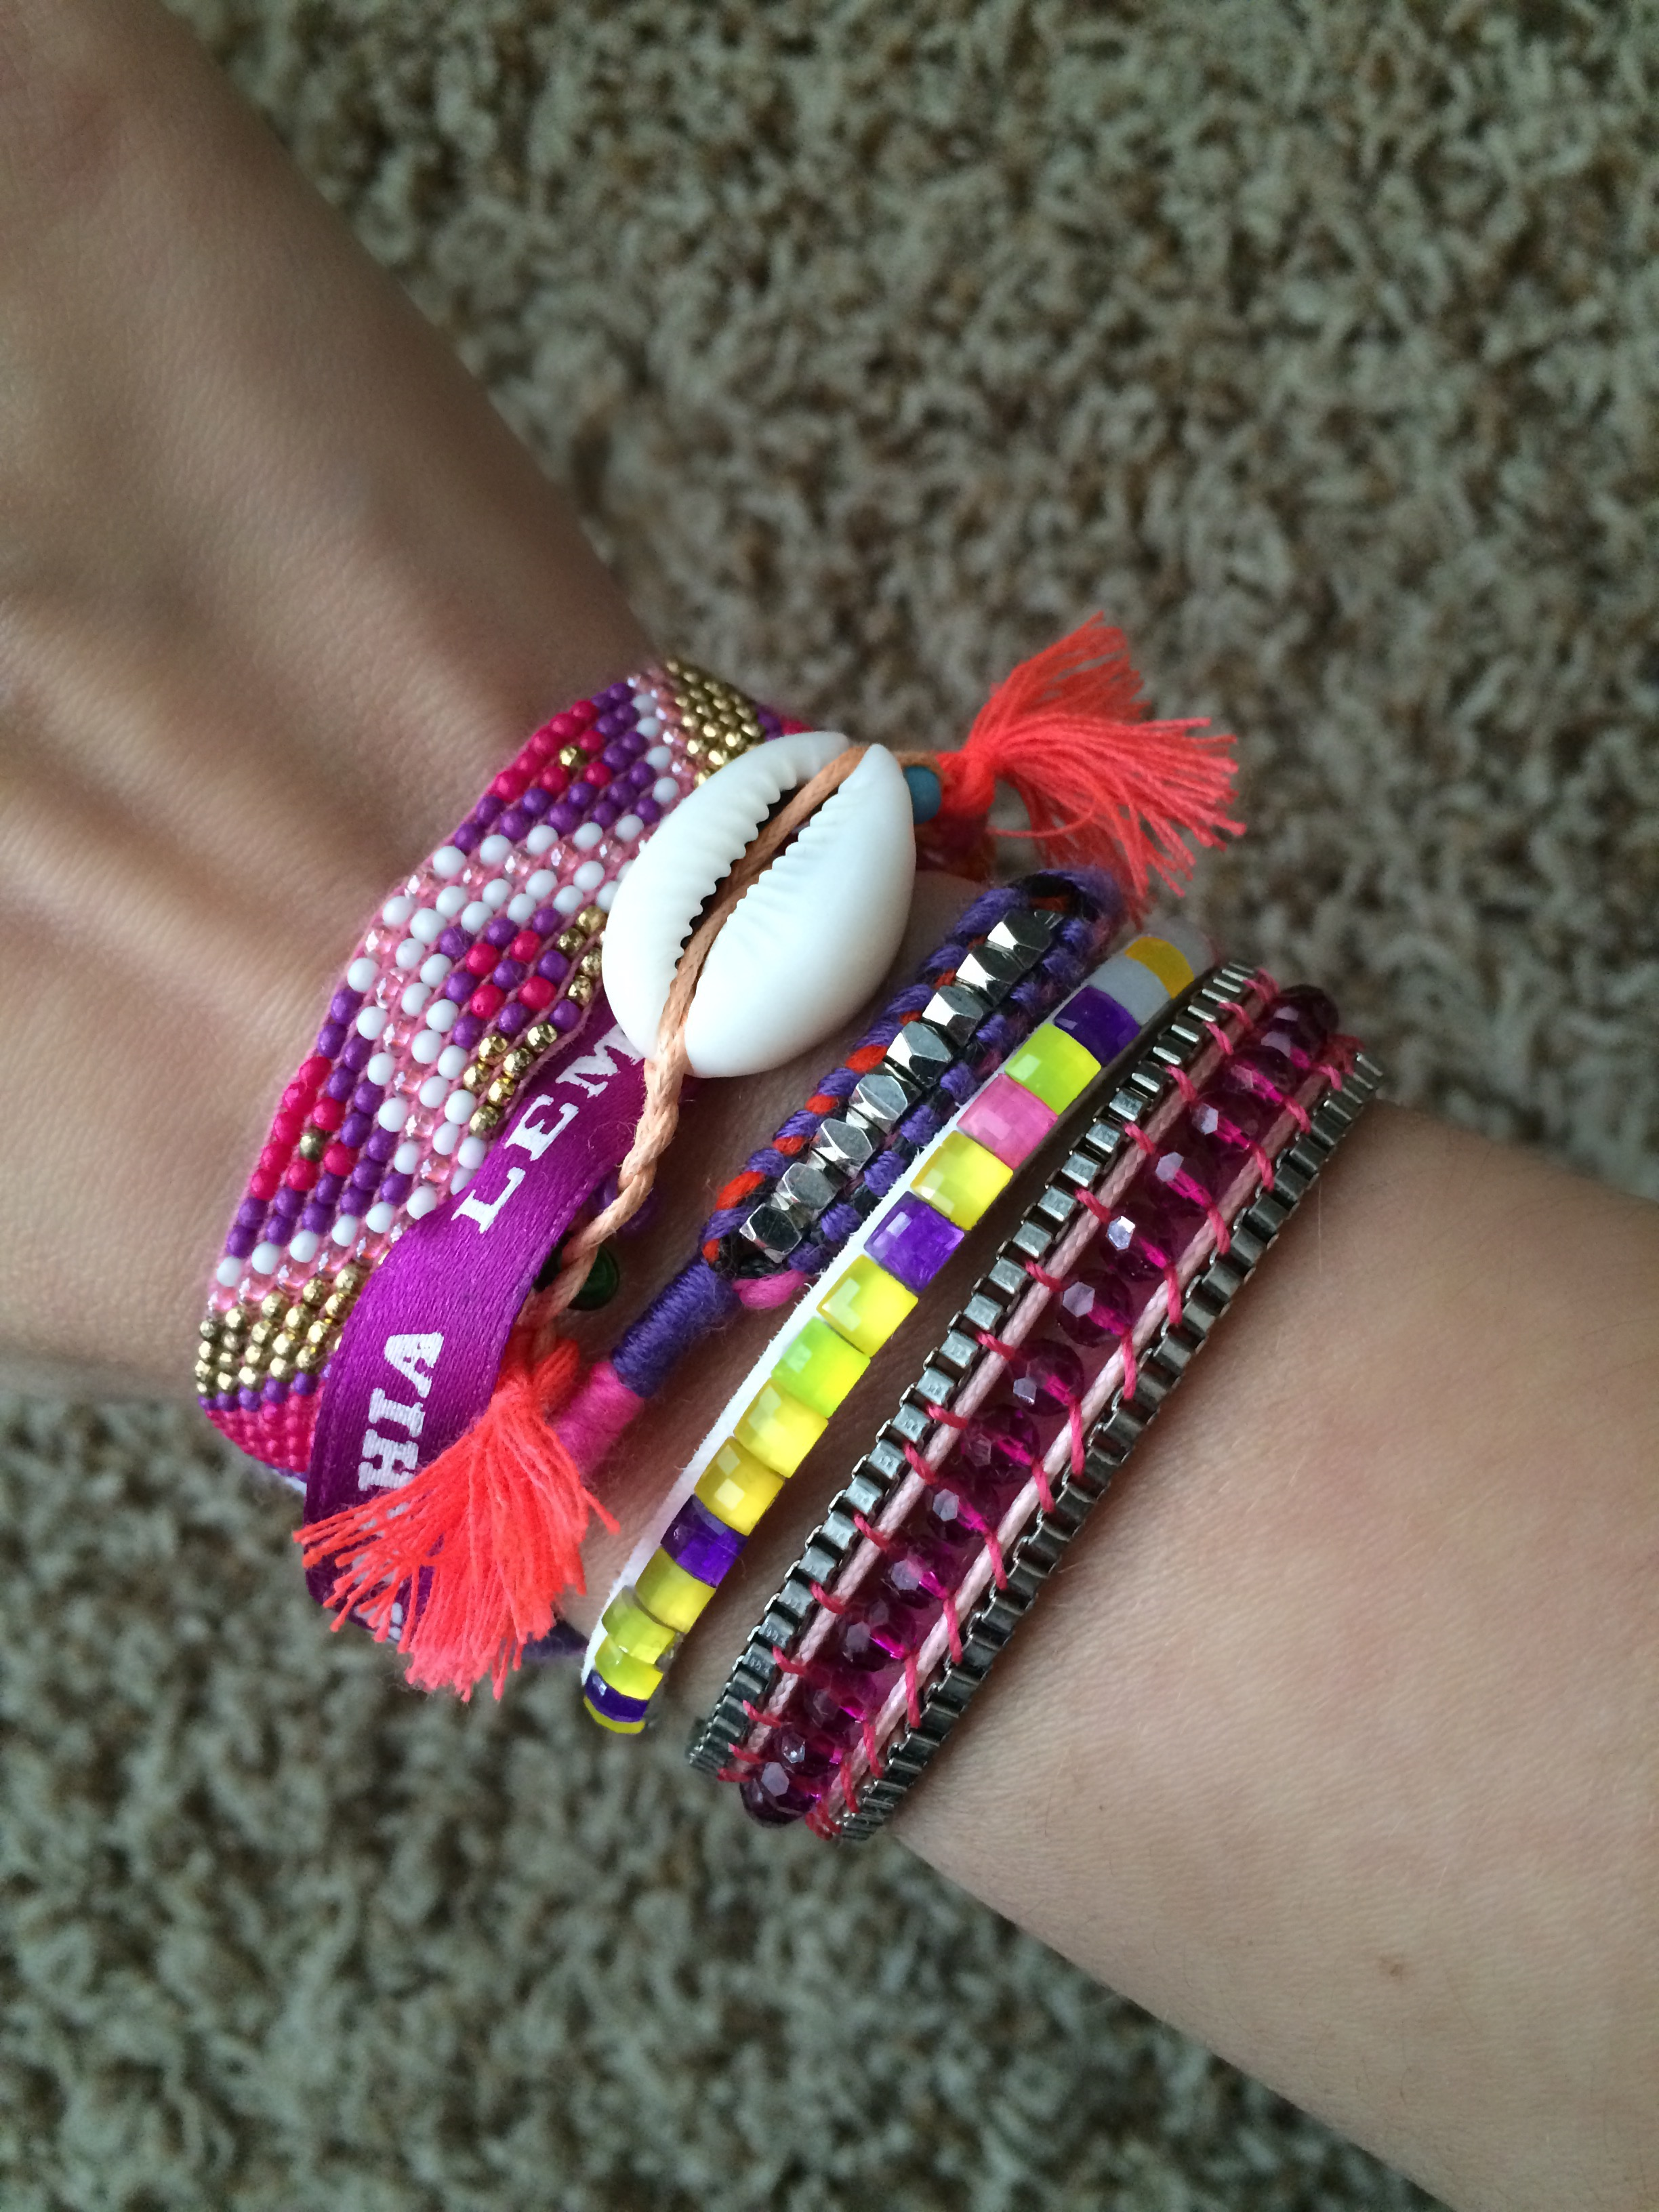 For an easier layered look,  Hipanema makes these fun bracelets that are already put together for you with one big magnetic clasp. It's a Summer go-to for me!